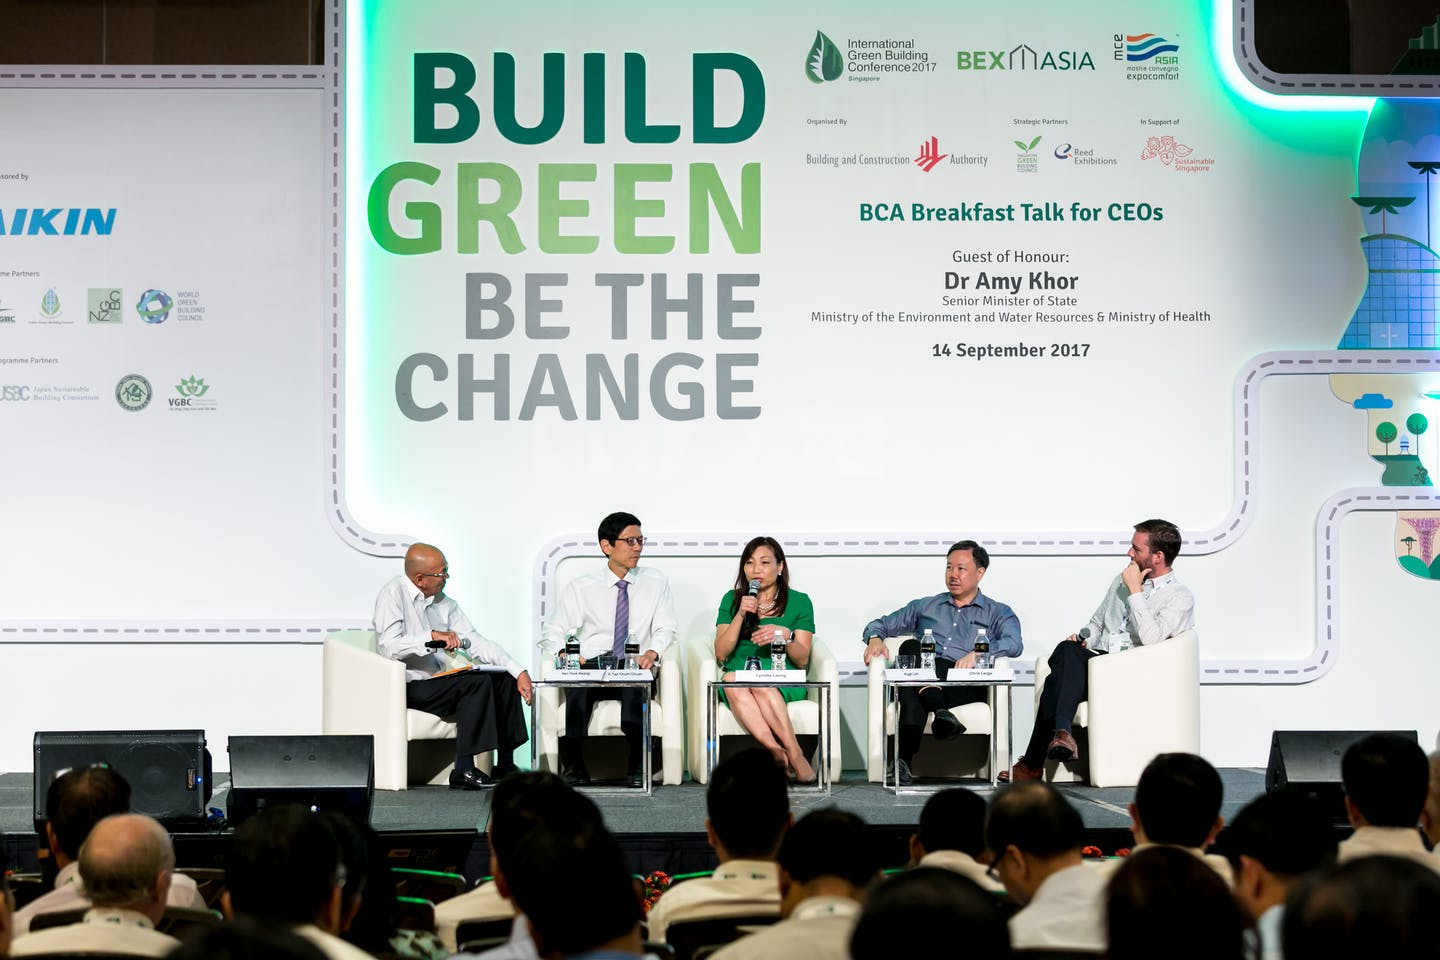 CapitaLand Commercial Trust speaking on a panel at the BCA Breakfast Talk for CEOs. Image: BCA